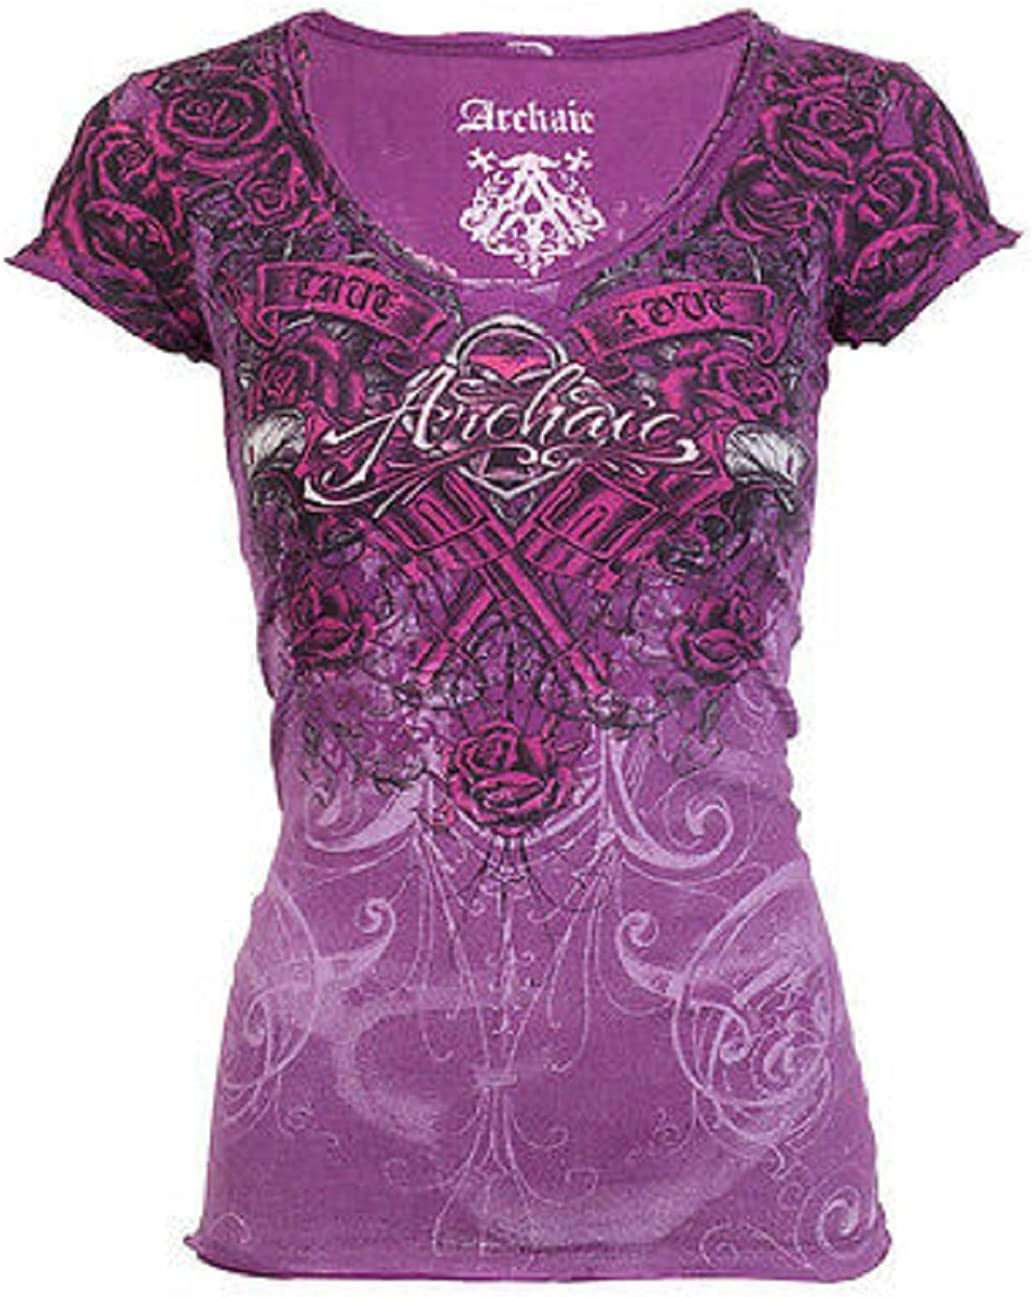 Affliction Archaic Women Cheap mail order specialty store T-Shirt Madame Charlotte Mall Roses S Biker Tattoo